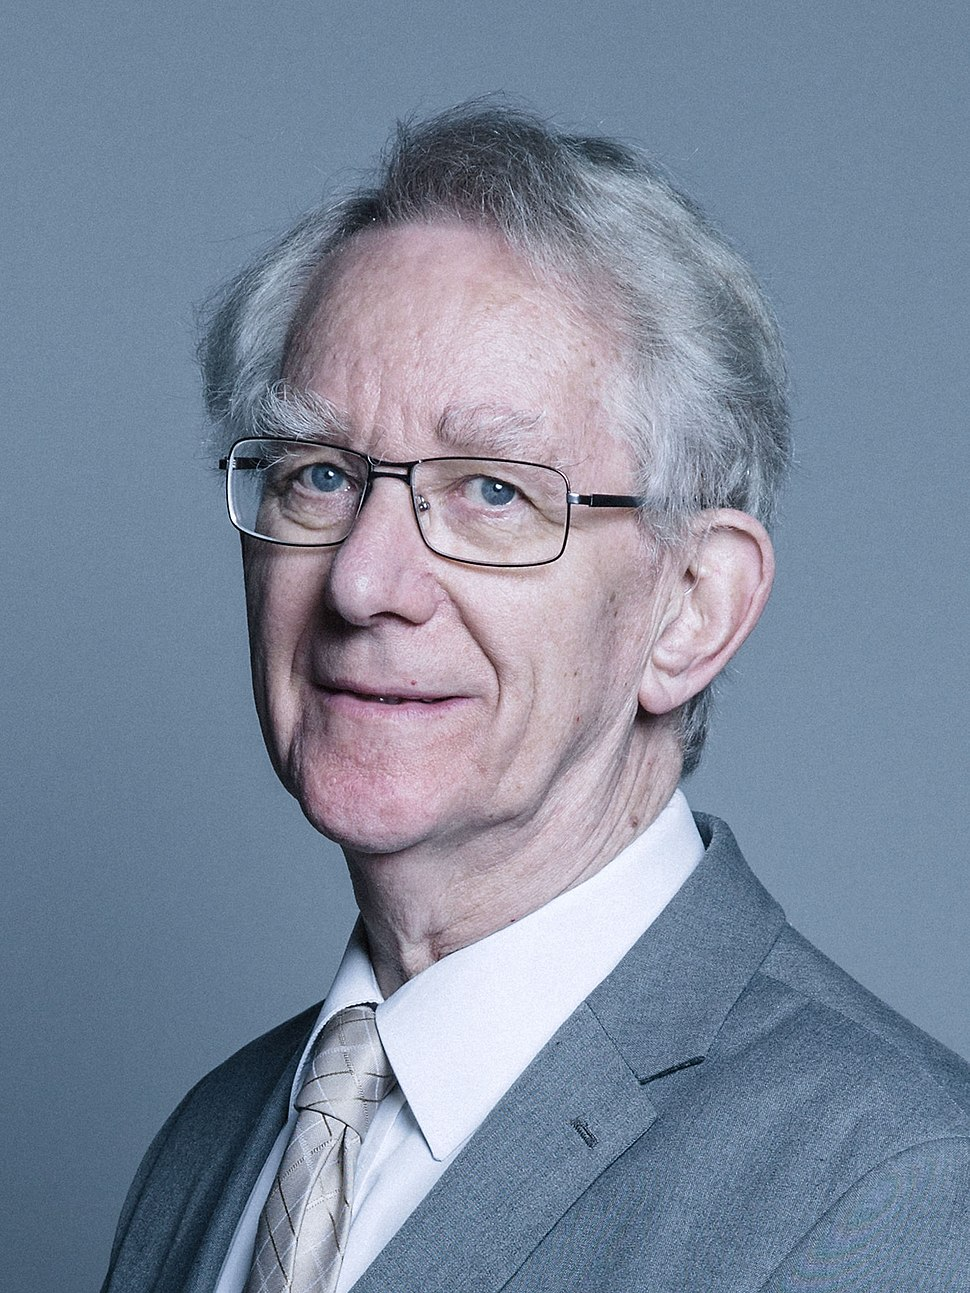 Official portrait of Lord Stunell crop 2